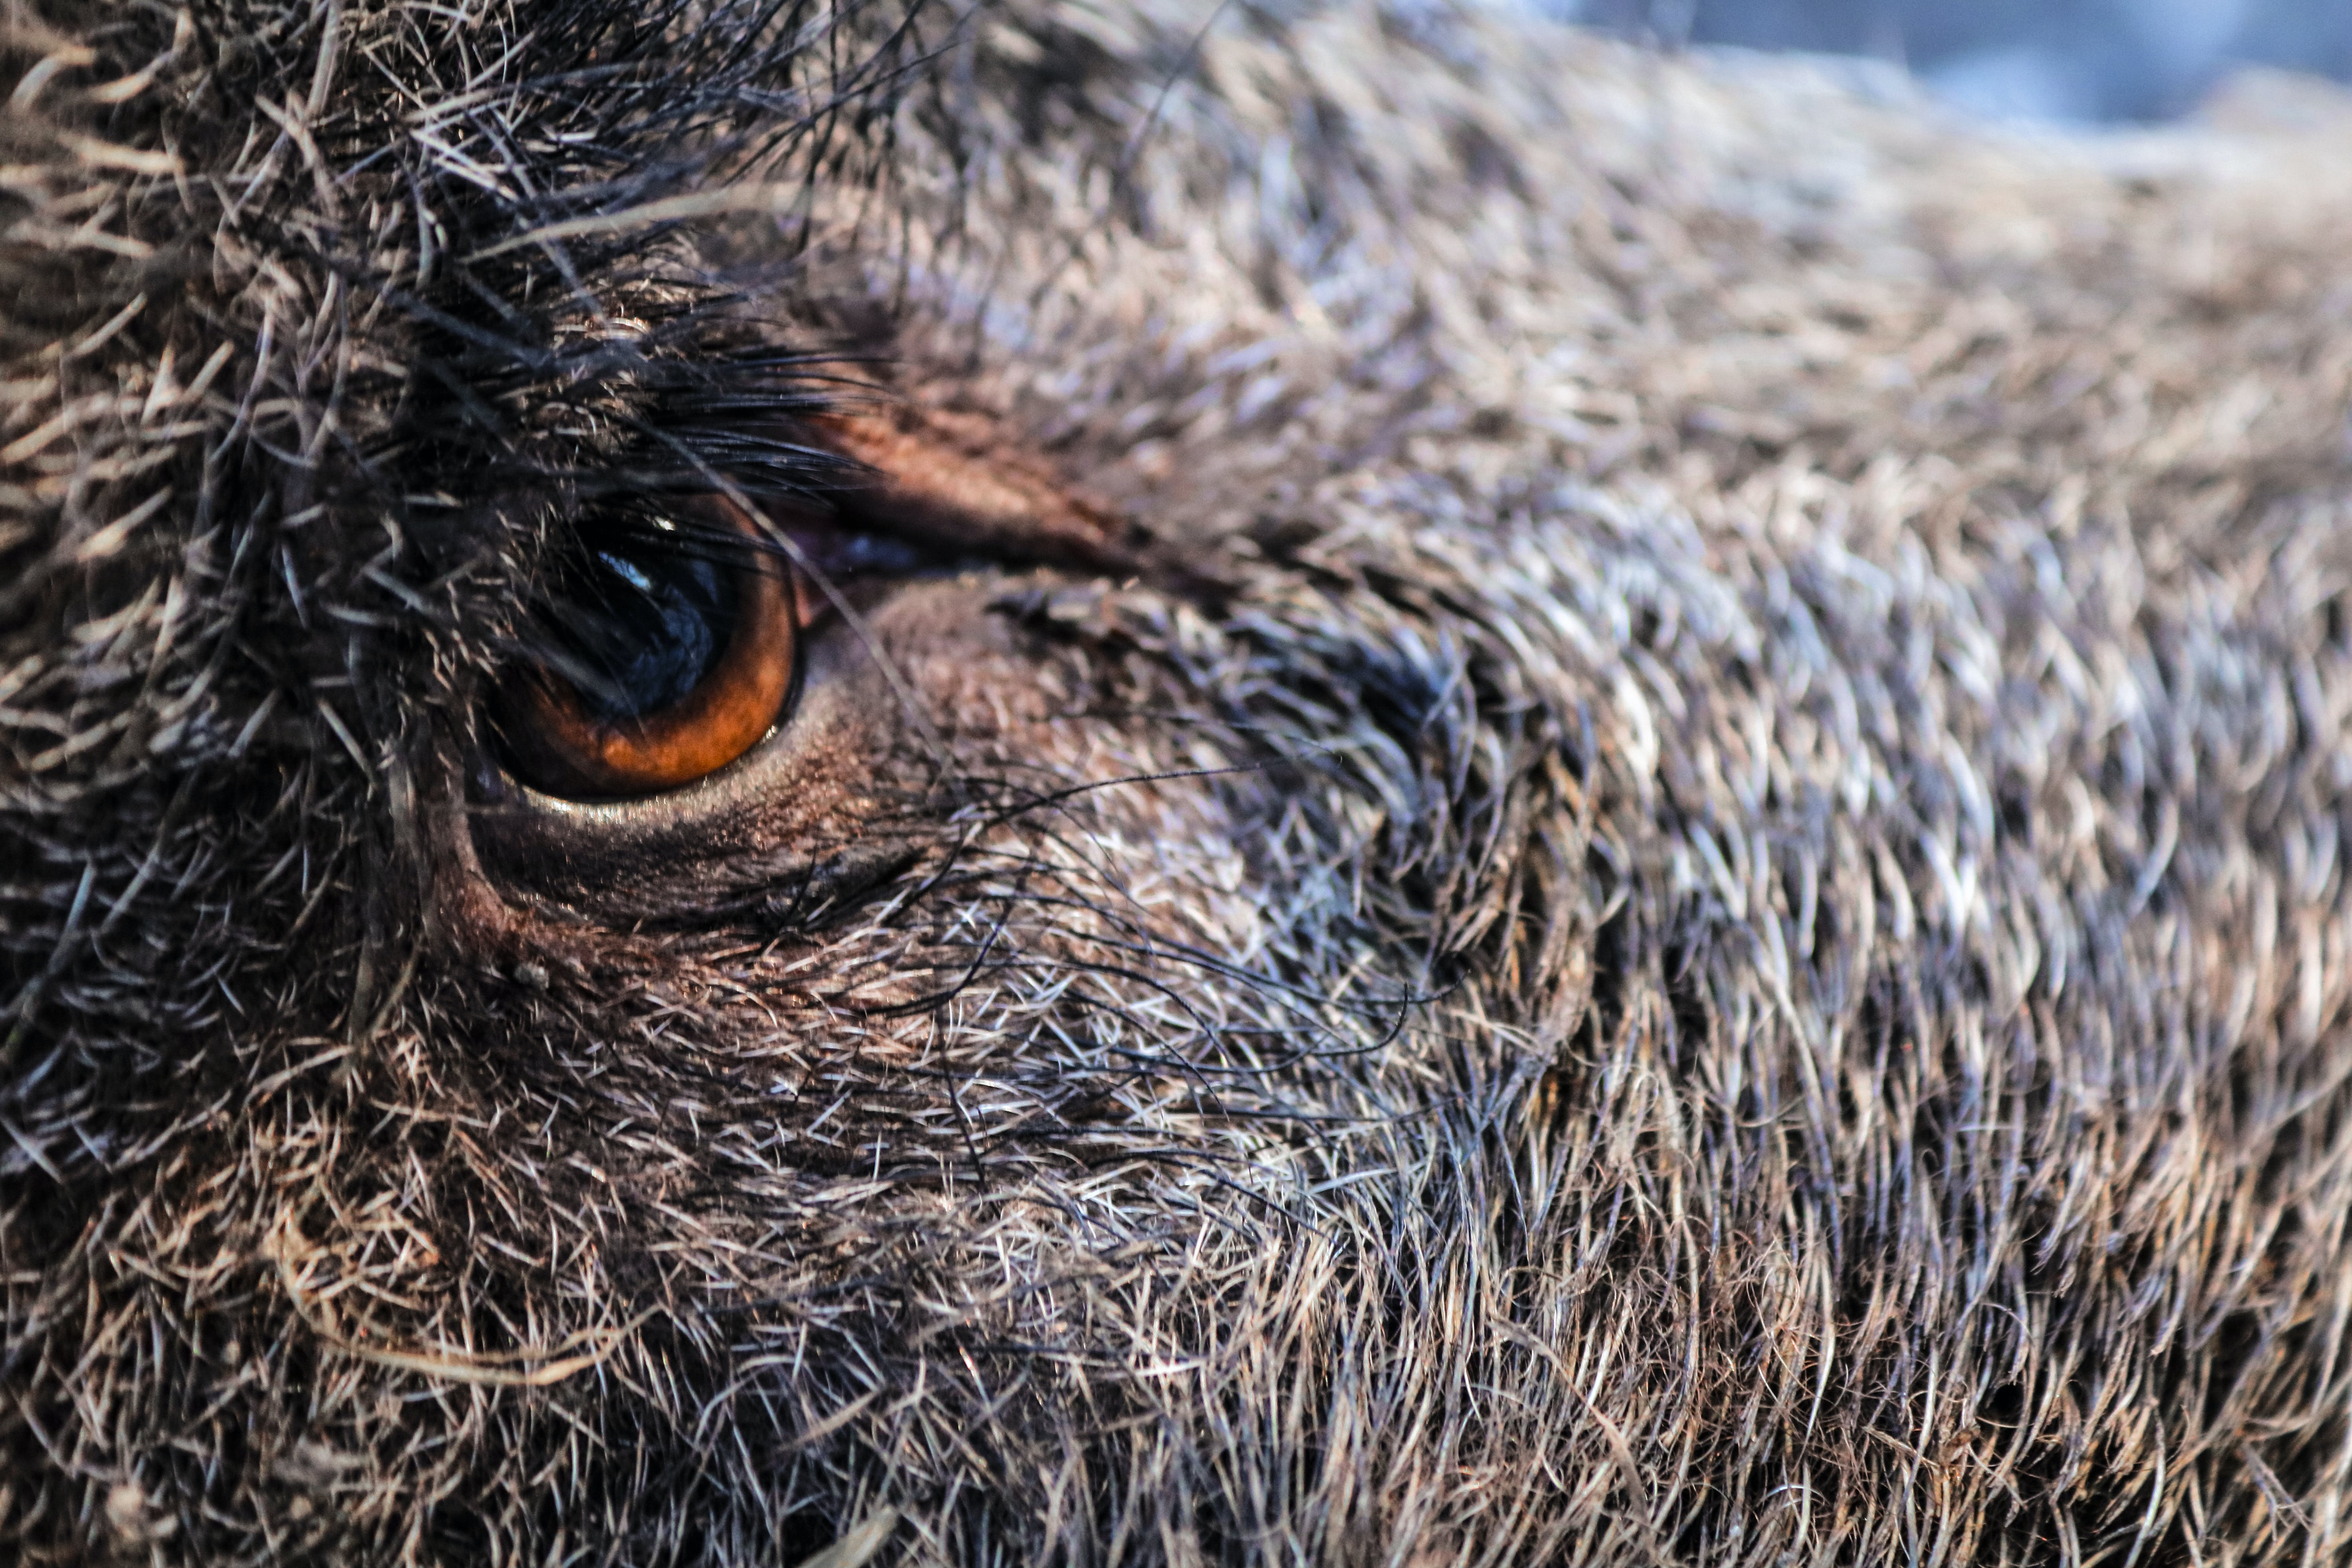 Close-up Photography of Animal's Eye